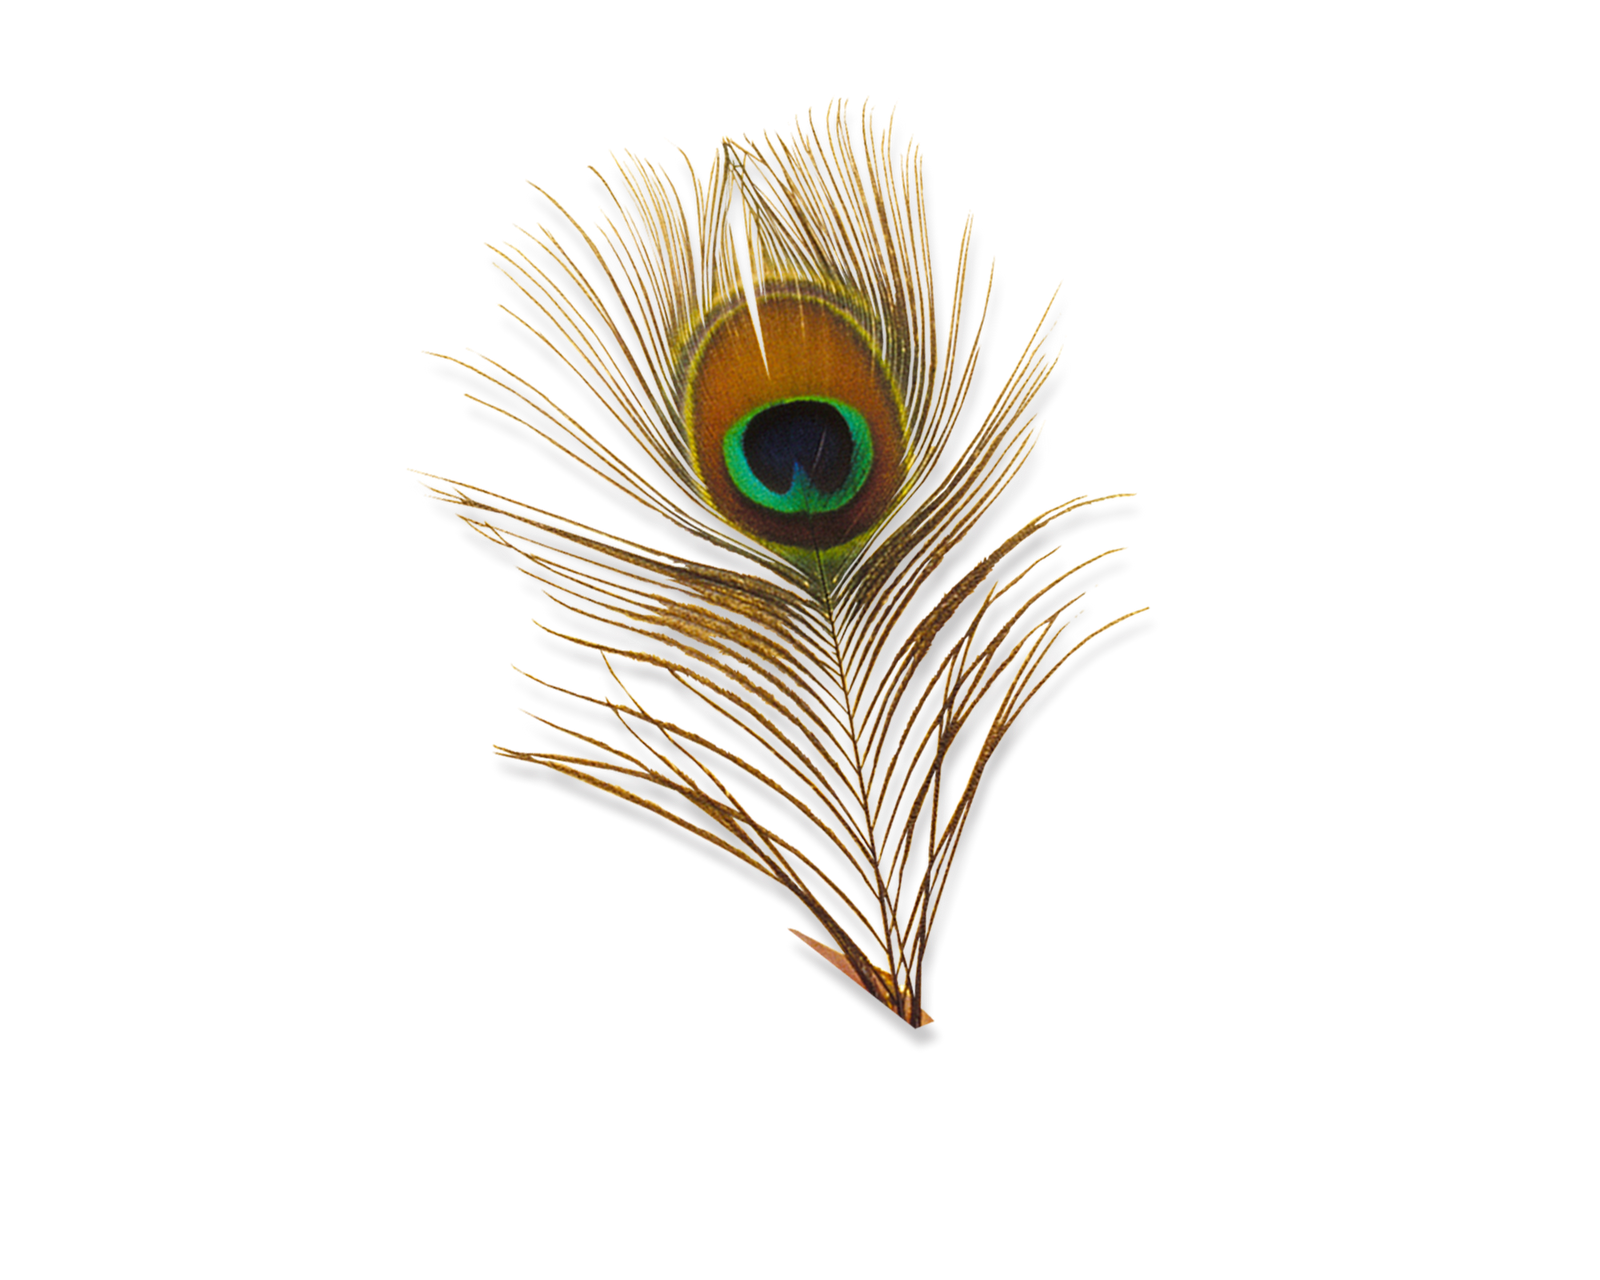 Jpg to png in photoshop. Peacock feather transparent images